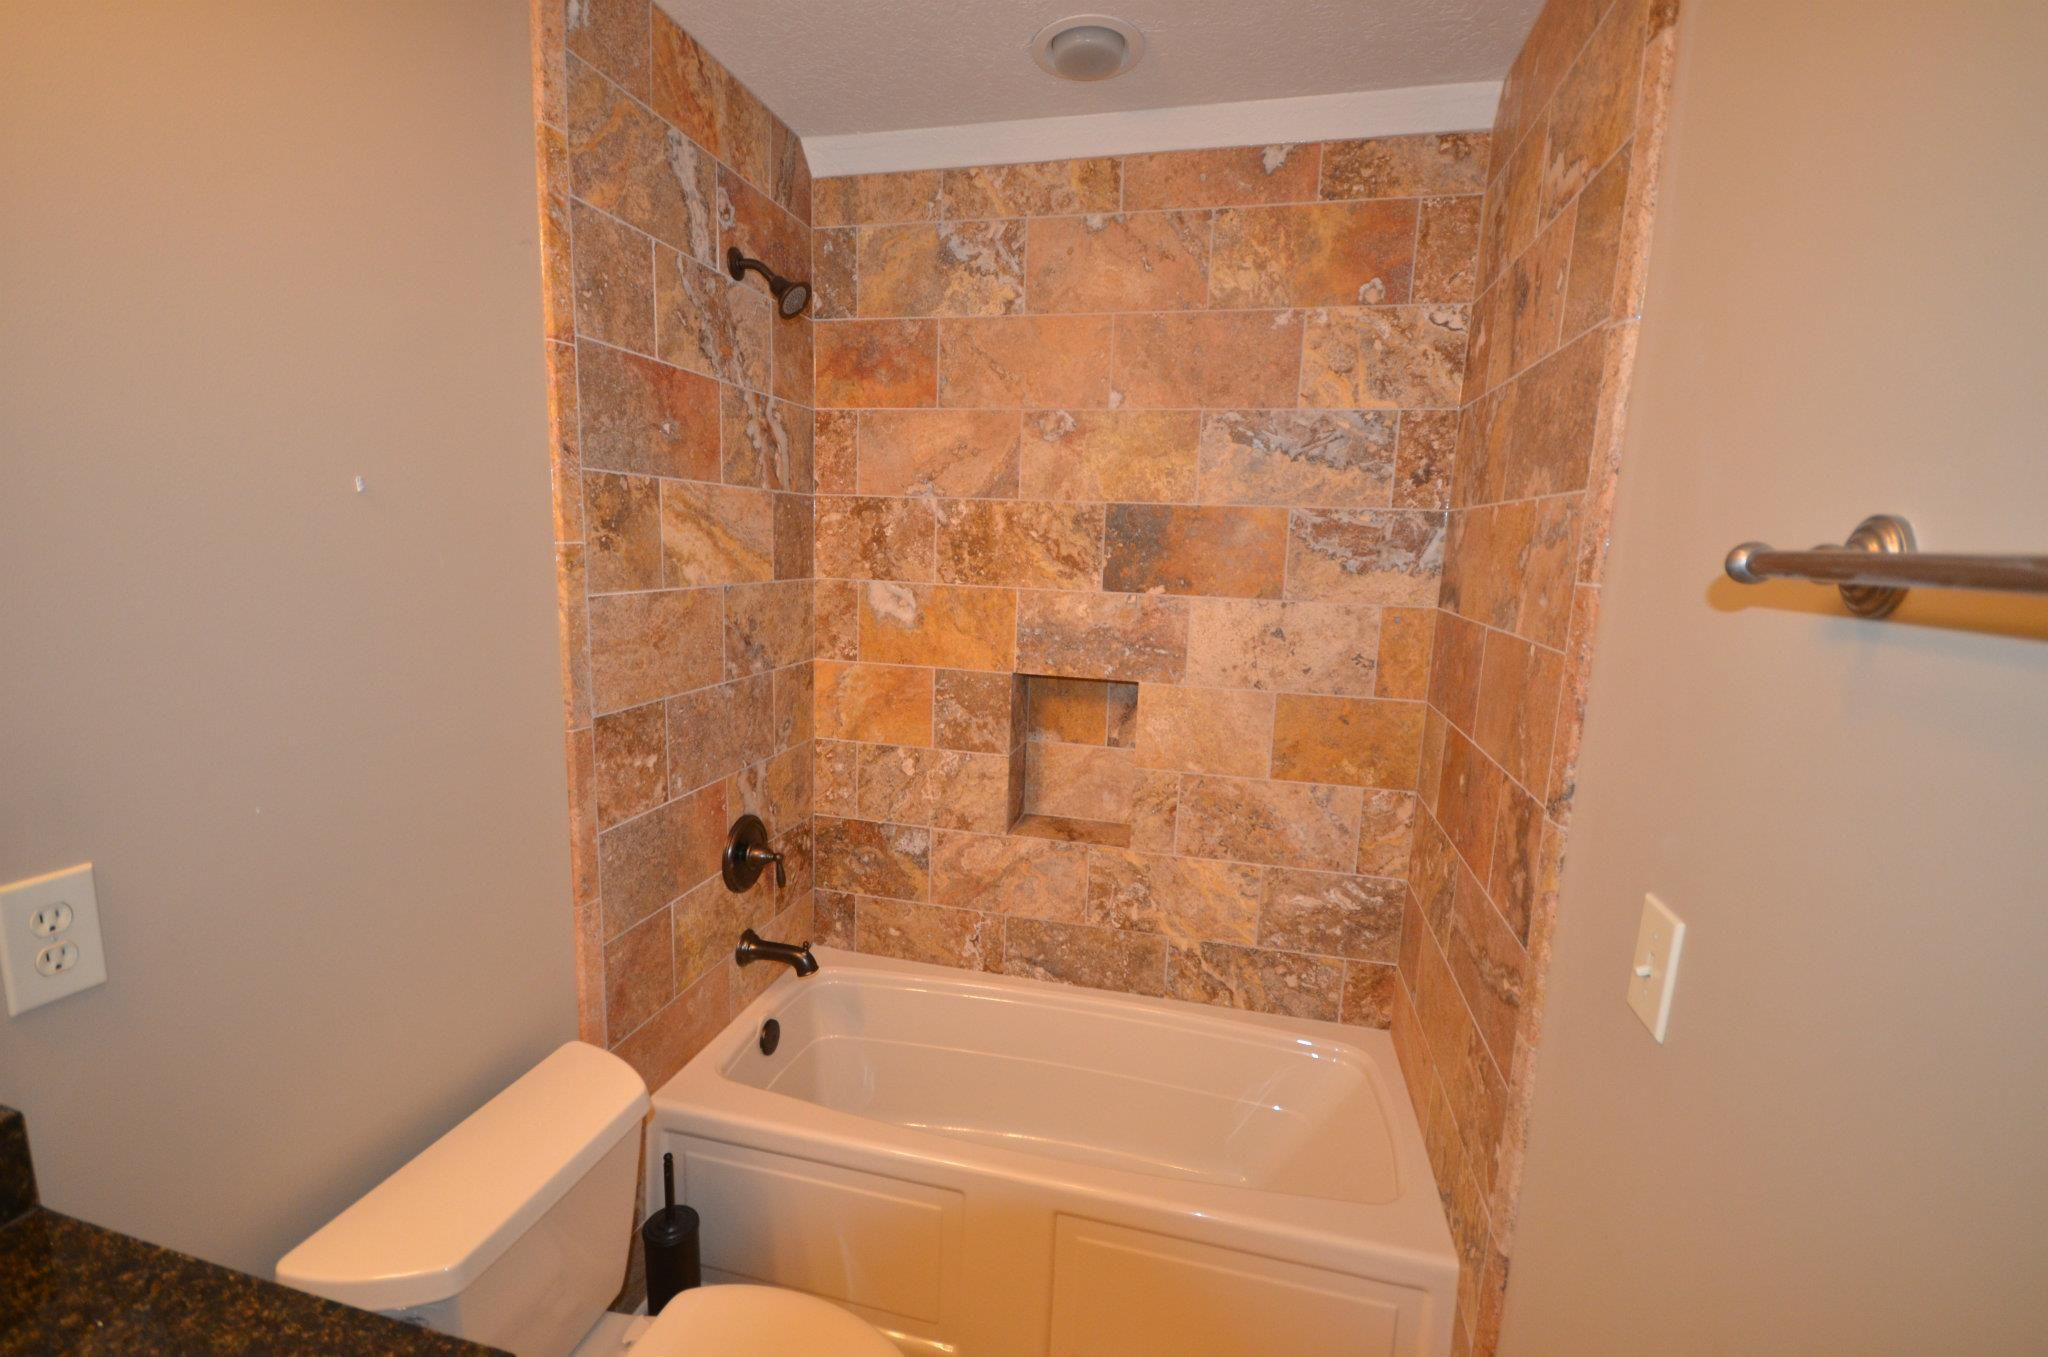 Example of large subway tiles in bathtub surround with niche ...